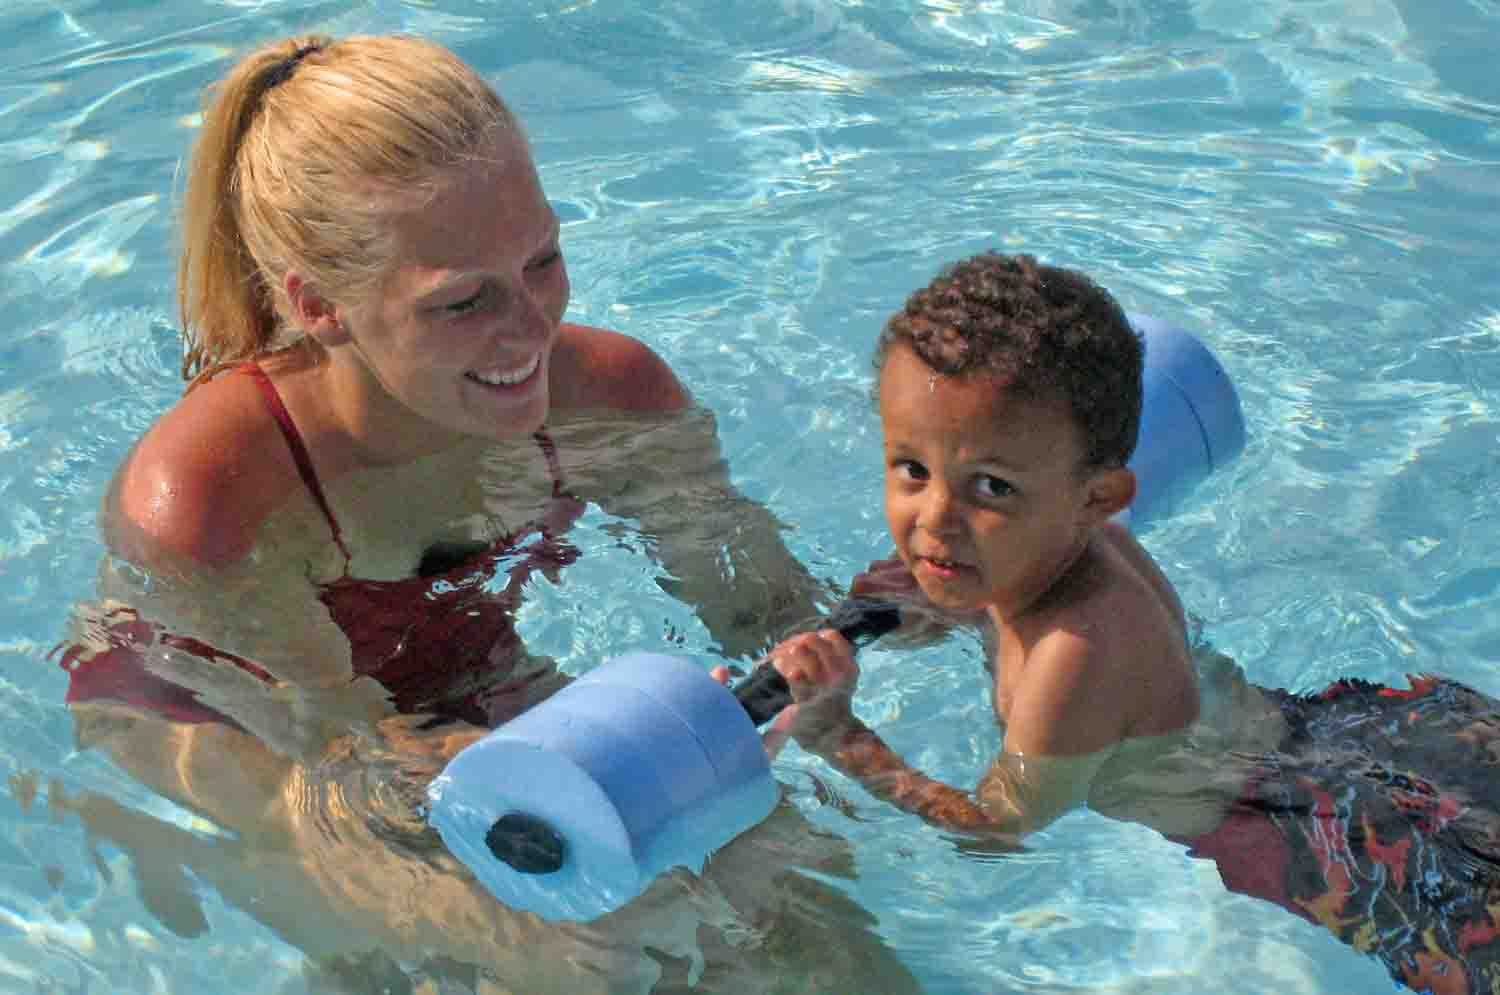 Triunfo Ymca Taking Signups For Summer Swim Lessons Junior Lifeguards Swim Team Triunfo